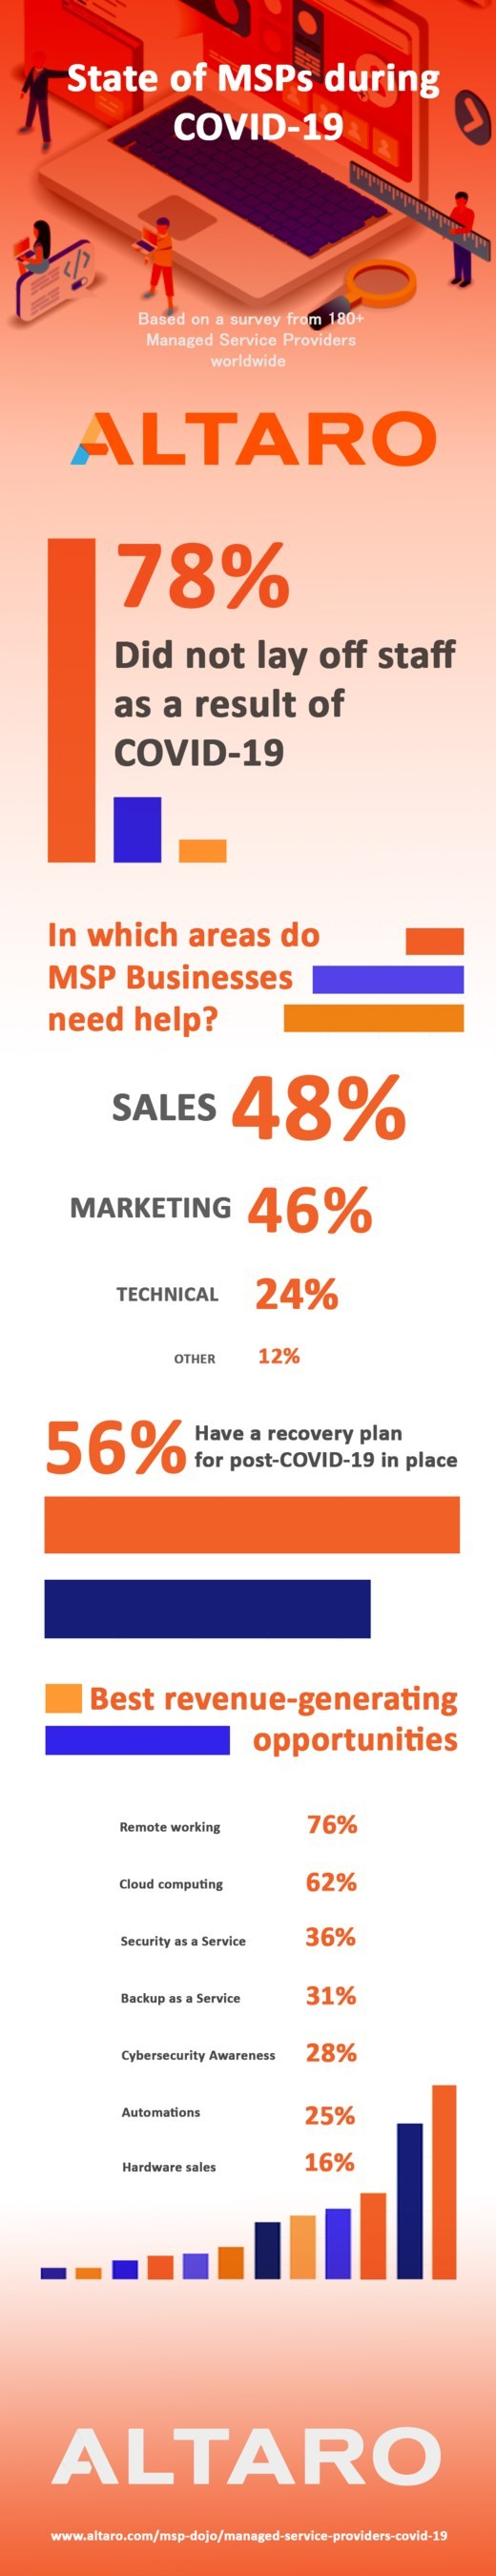 State of MSPs During Covid-19 Infographic